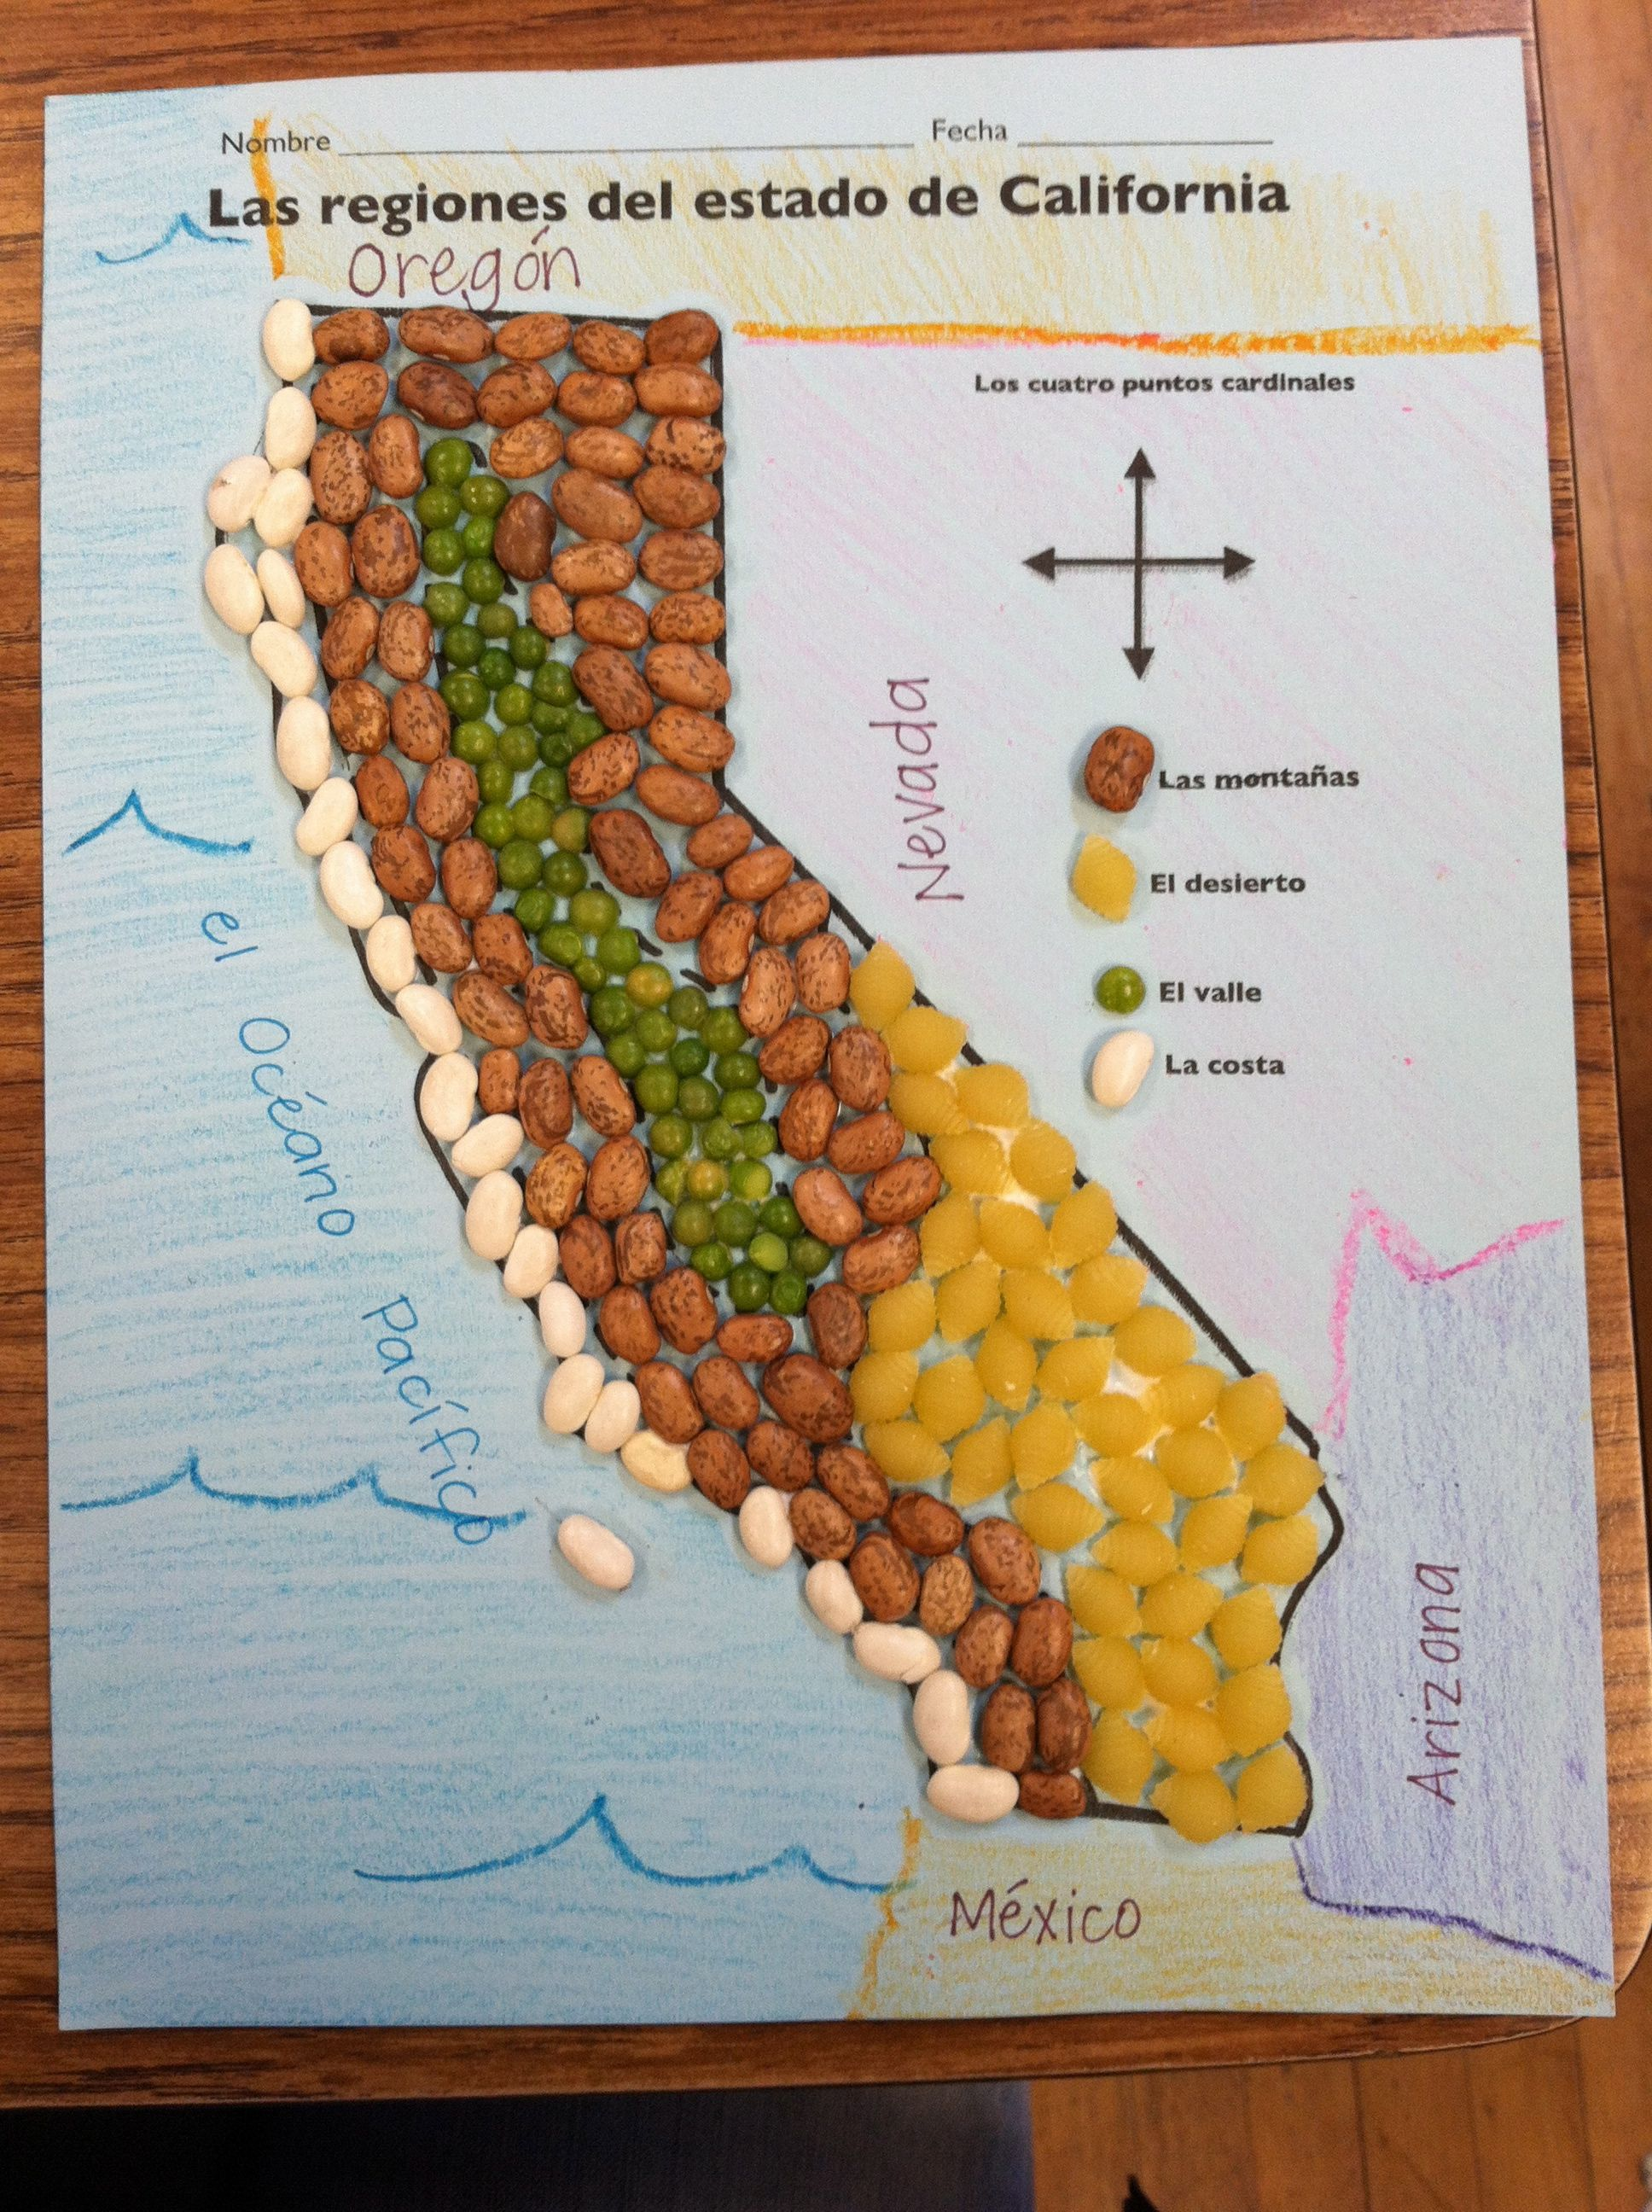 Regions of california with pinto bean mountains green lentil valley